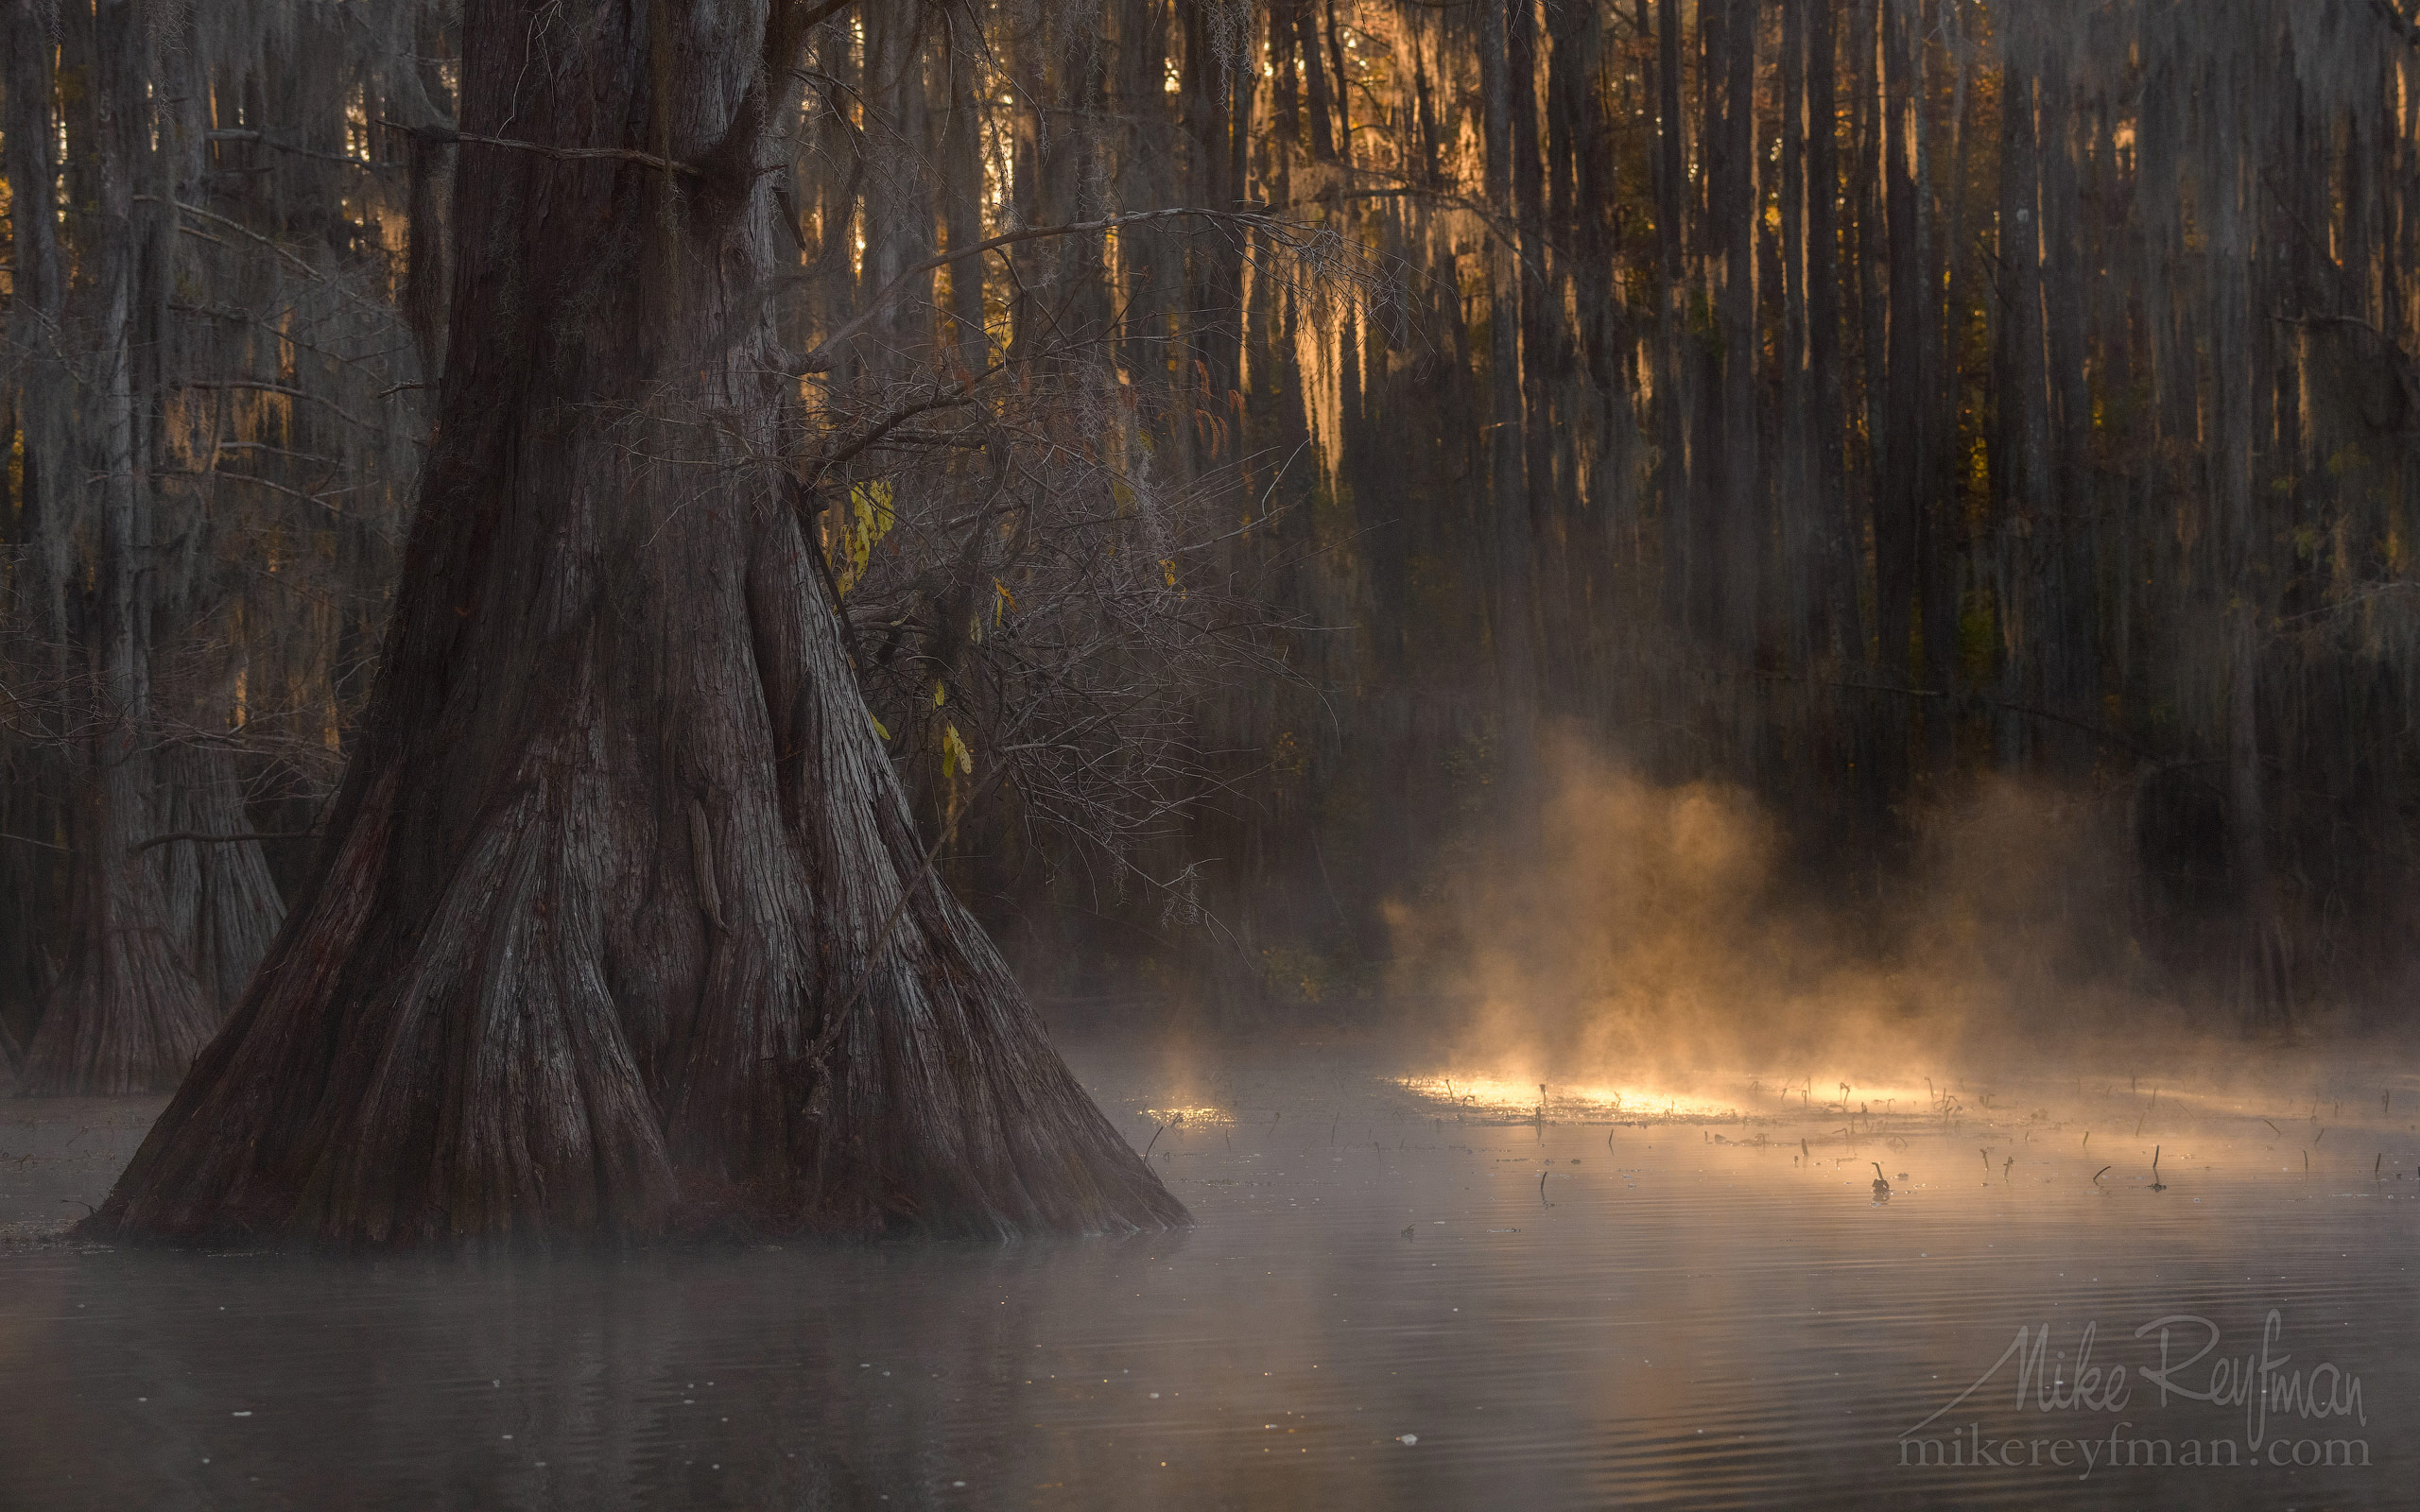 Bald Cypress trees in the swamp. Foggy morning on Caddo Lake, Texas, US 035-LT1-50A3368.jpg - Bold Cypress and Tupelo Trees in the swamps of Atchafalaya River Basin. Caddo, Martin and Fousse Lakes. Texas/Louisiana, USA. - Mike Reyfman Photography